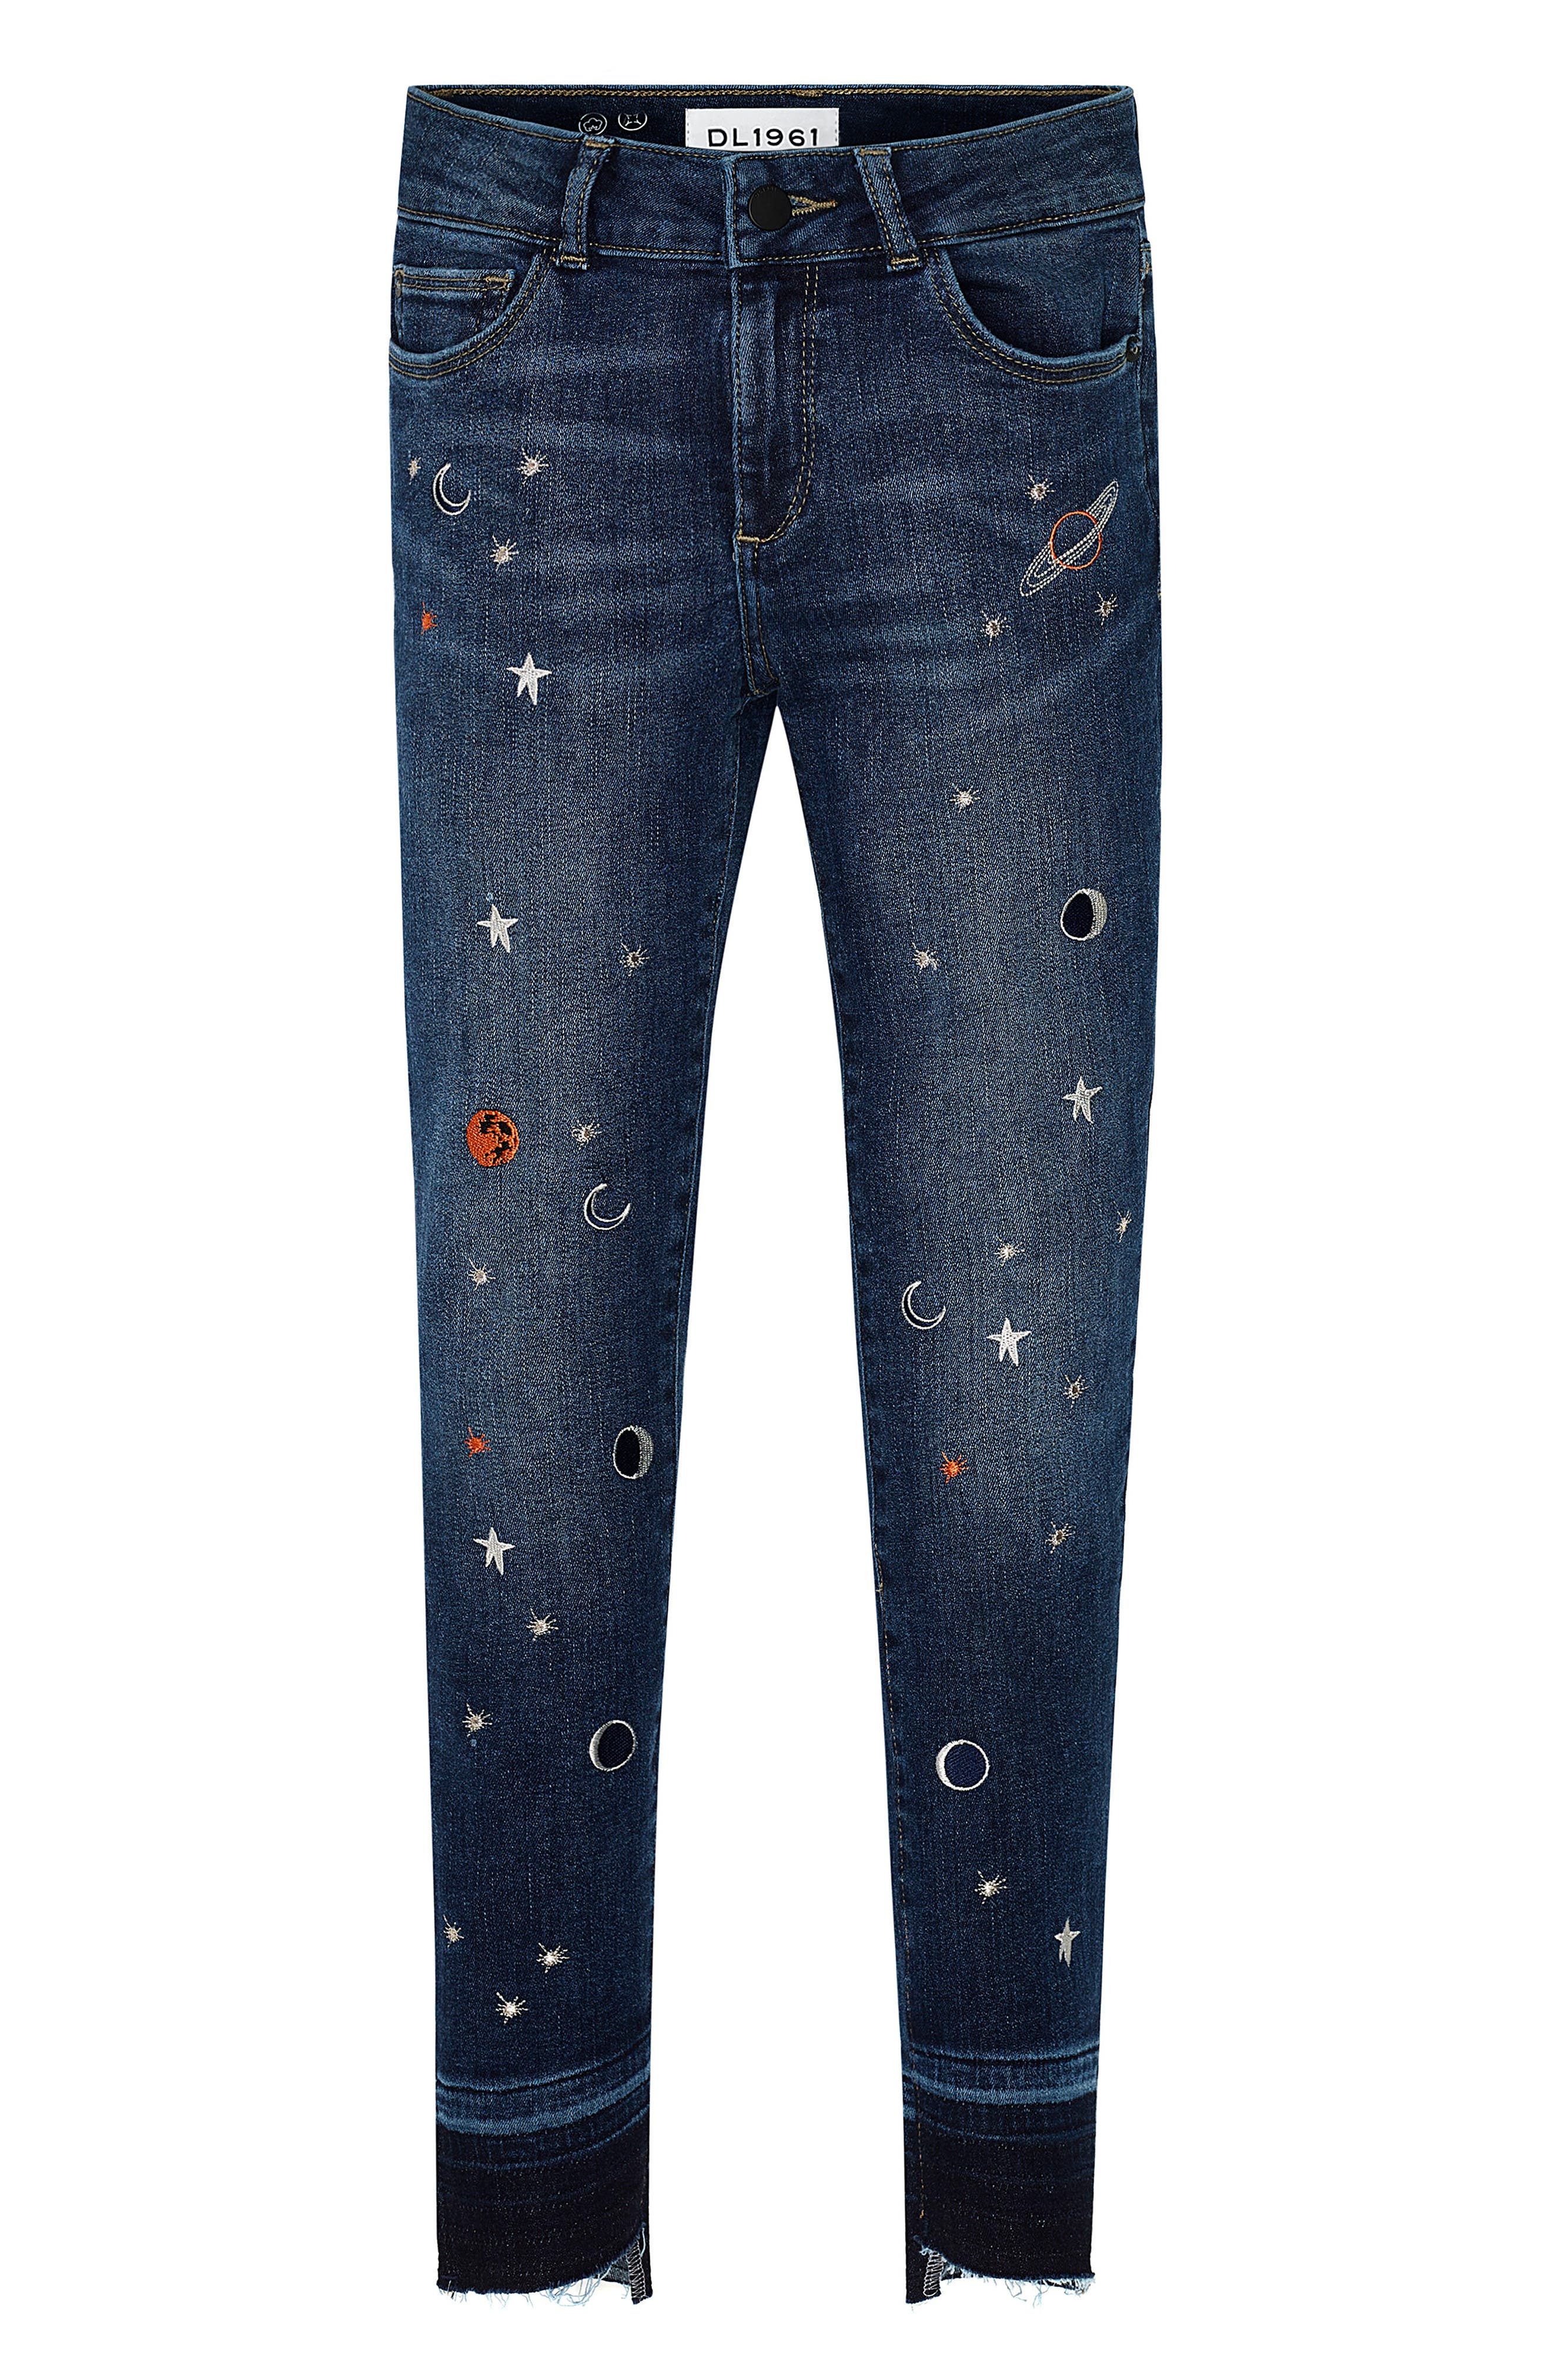 Chloe Galaxy Embroidered Skinny Jeans,                         Main,                         color, 406